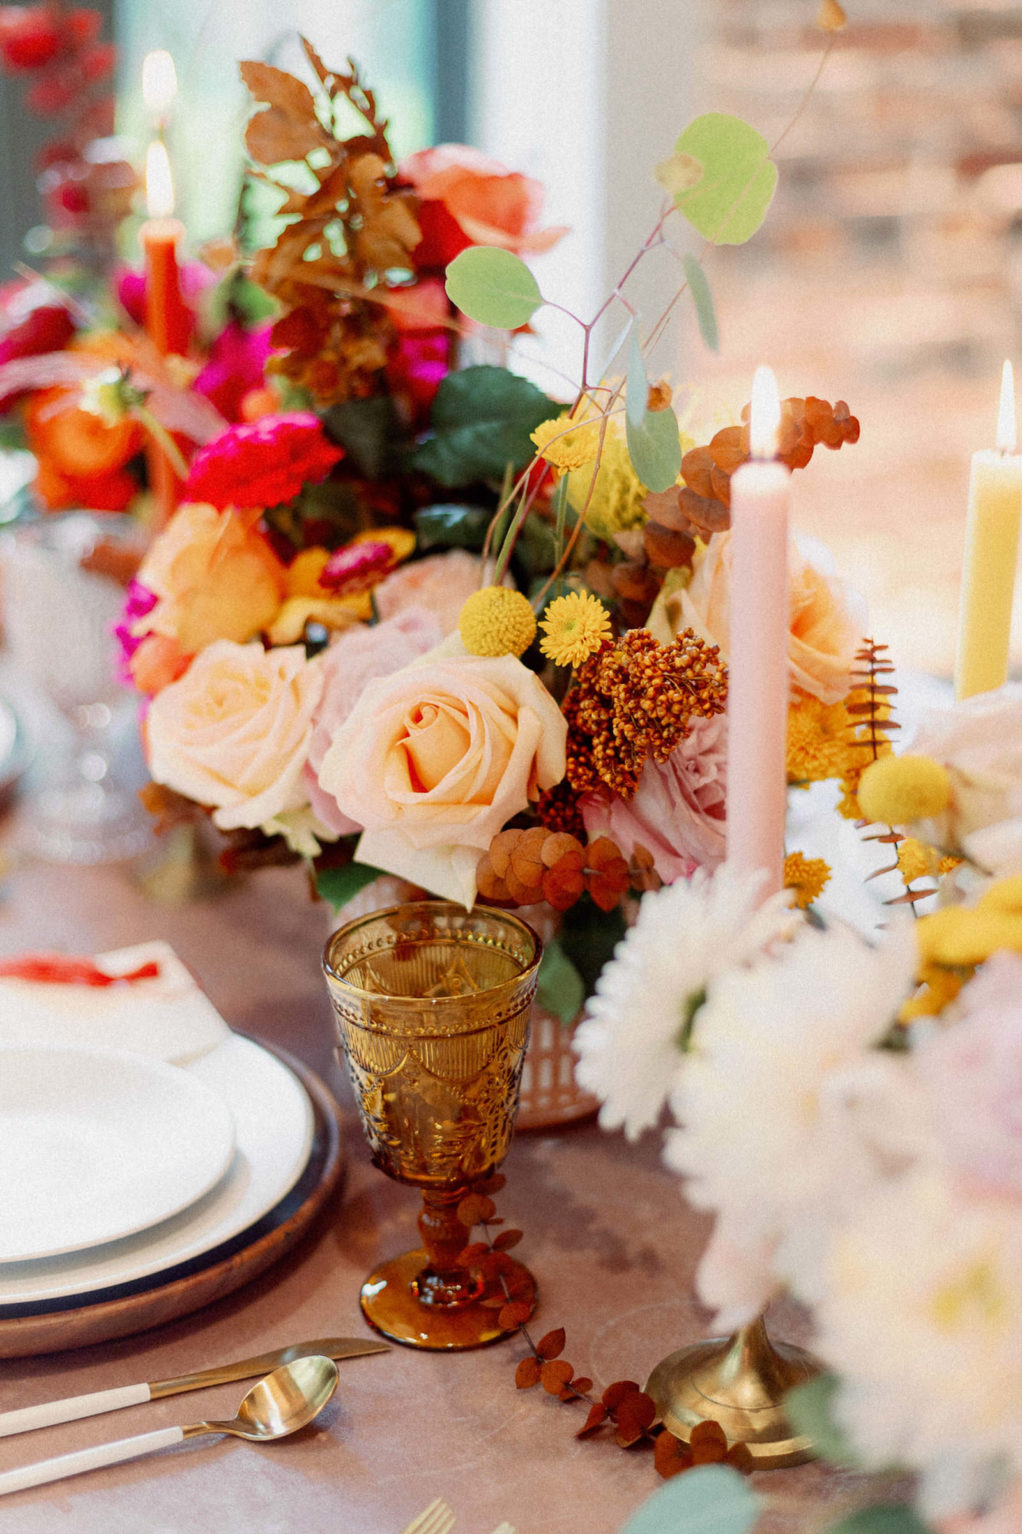 Whimsical and Colorful Wedding Reception Decor, Yellow Tall Candlesticks, Pink, Yellow and Orange Low Floral Centerpiece, Gold Flatware, Yellow Napkin Linen, Wooden Place Card, Vintage Glassware   Tampa Bay Wedding Photographer Dewitt for Love   Linen Rentals Kate Ryan Event Rentals